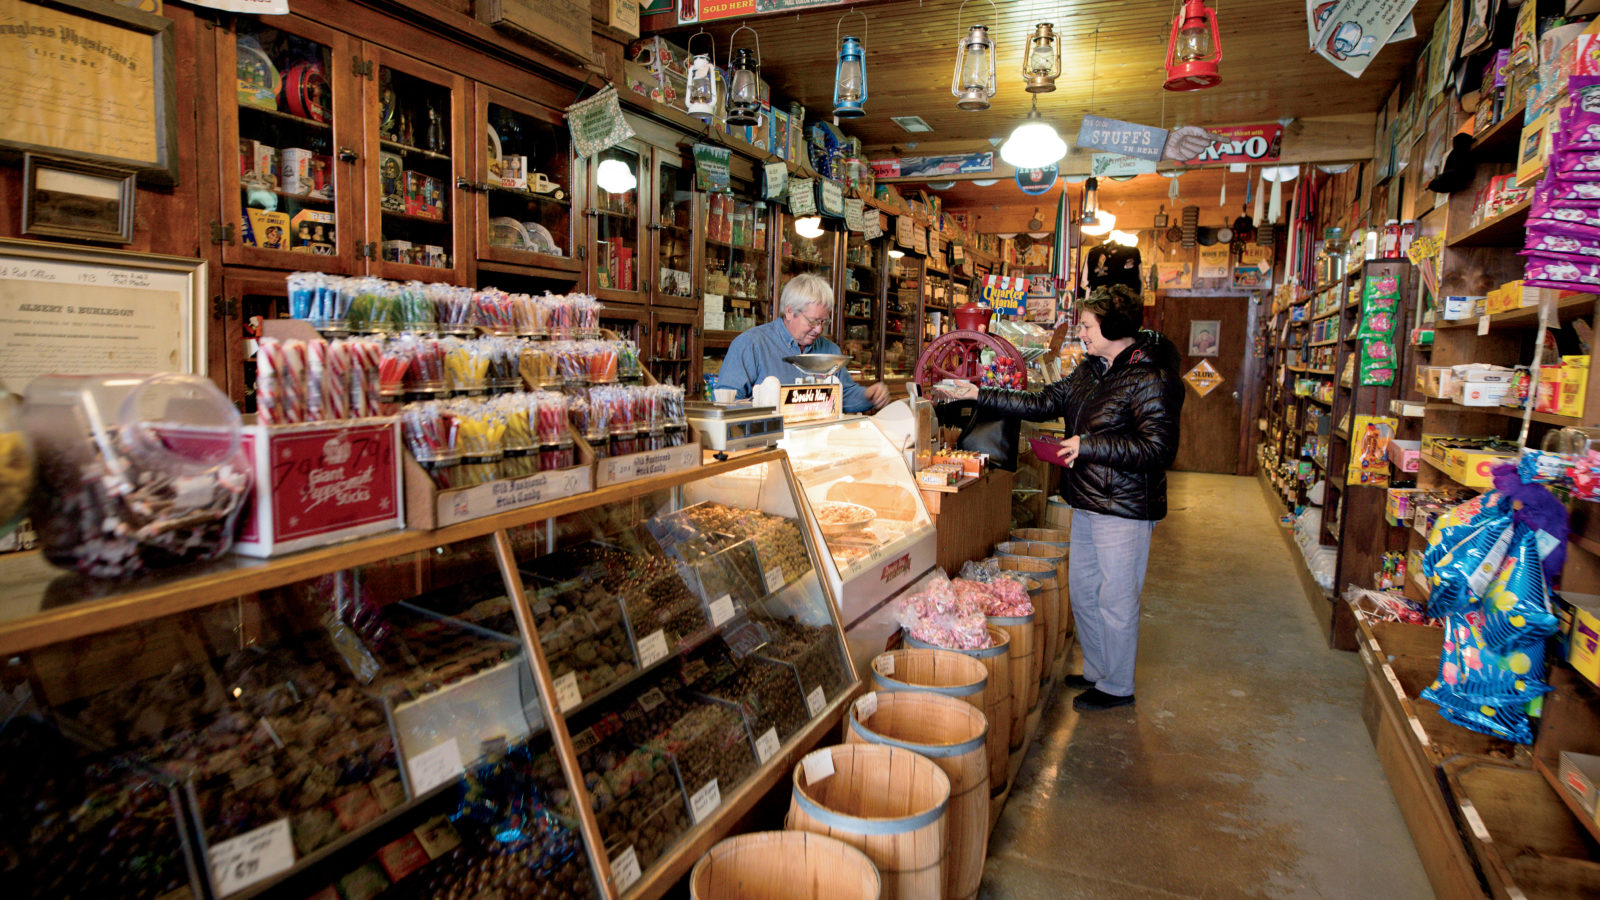 Tom and Kristin Sewell are the owners of Candy & Stuff in Farmland, Indiana